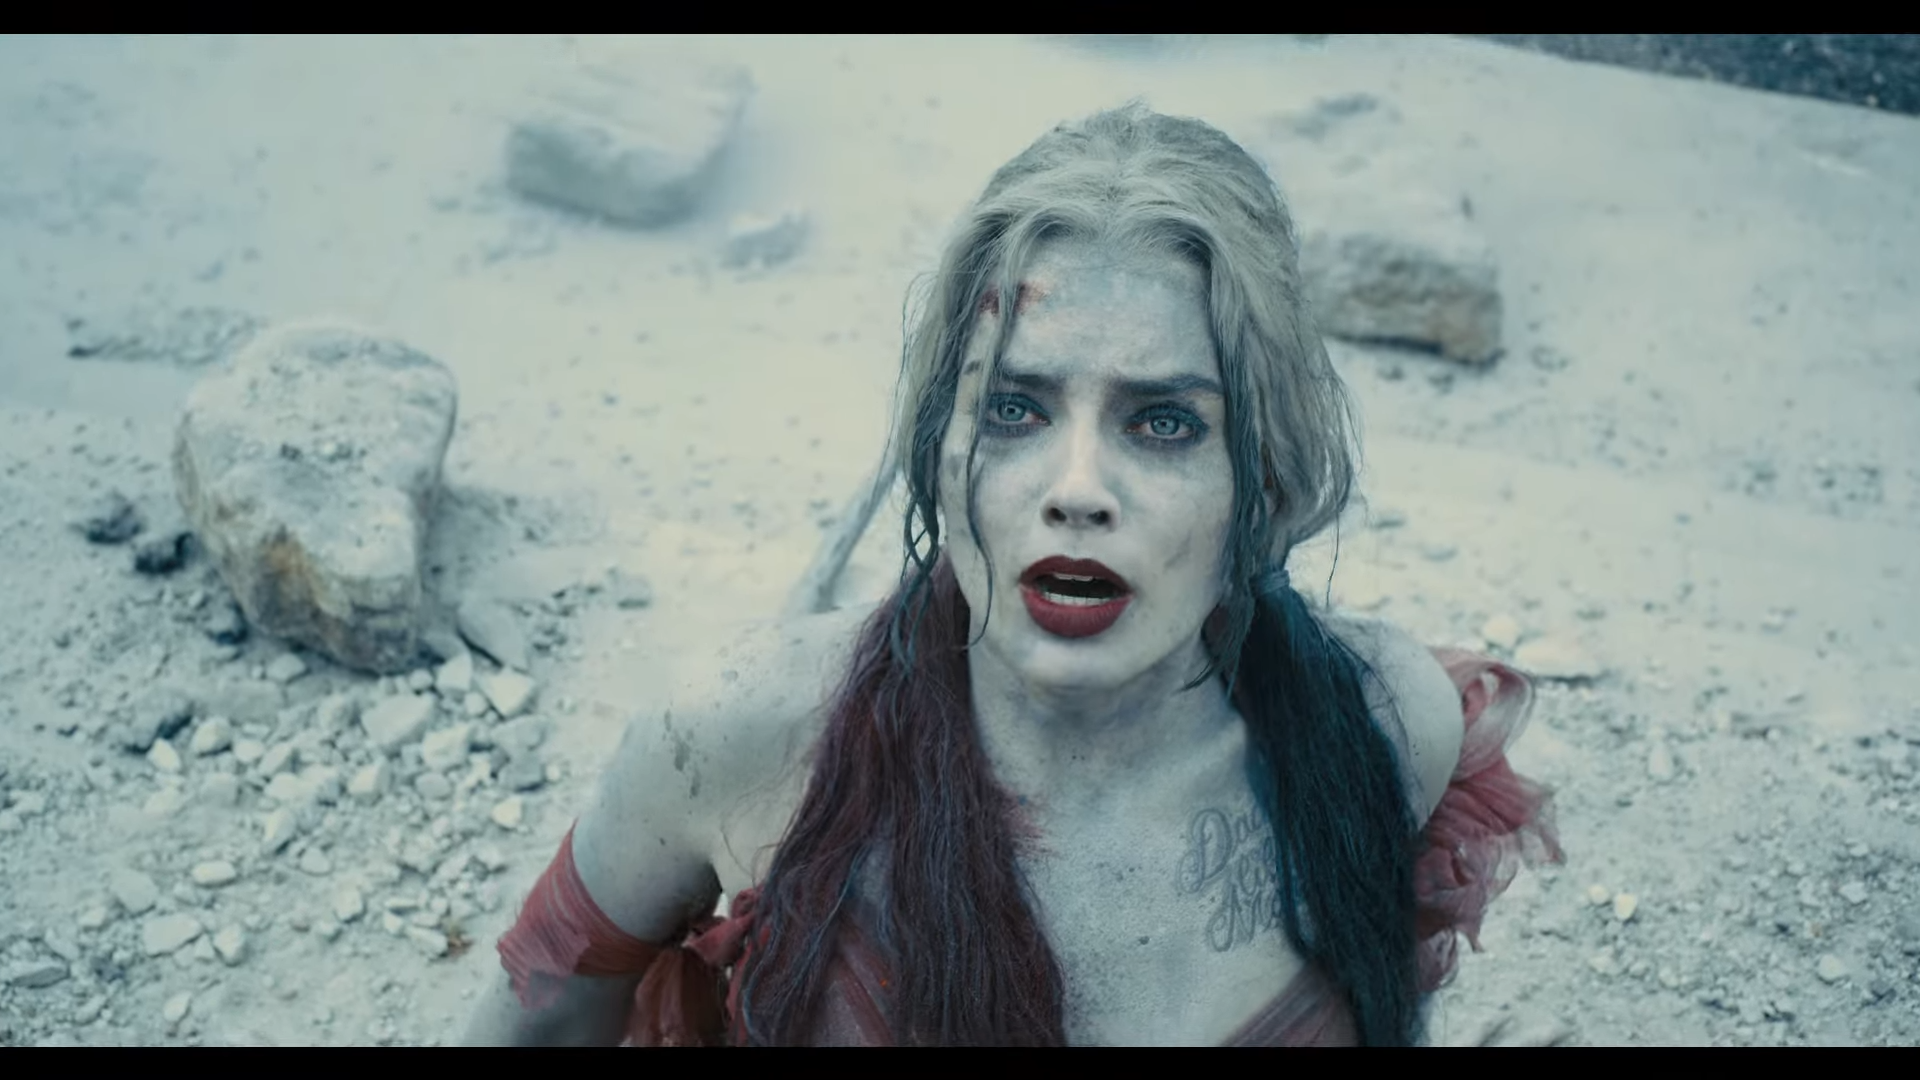 THE-SUICIDE-SQUAD-Rebellion-Trailer-1-54-screenshot-15